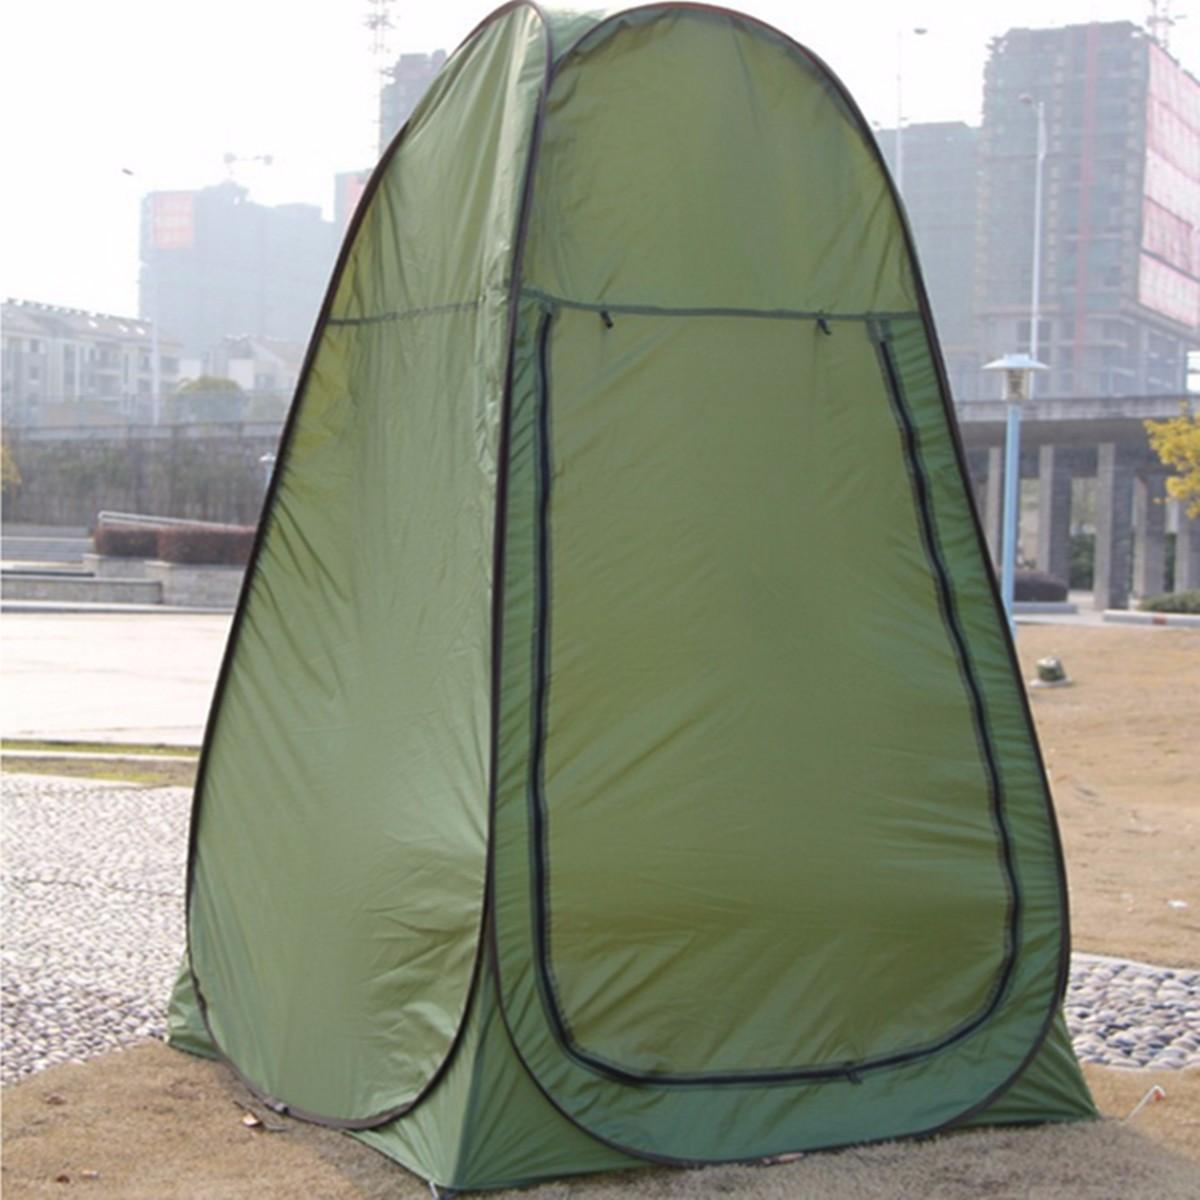 Multi Function Outdoor Portable Privacy Shower Toilet C&ing Pop Up Tent Outdoor Dressing C&ing Tent Family Tents For Sale Trailer Tents From ... & Multi Function Outdoor Portable Privacy Shower Toilet Camping Pop ...